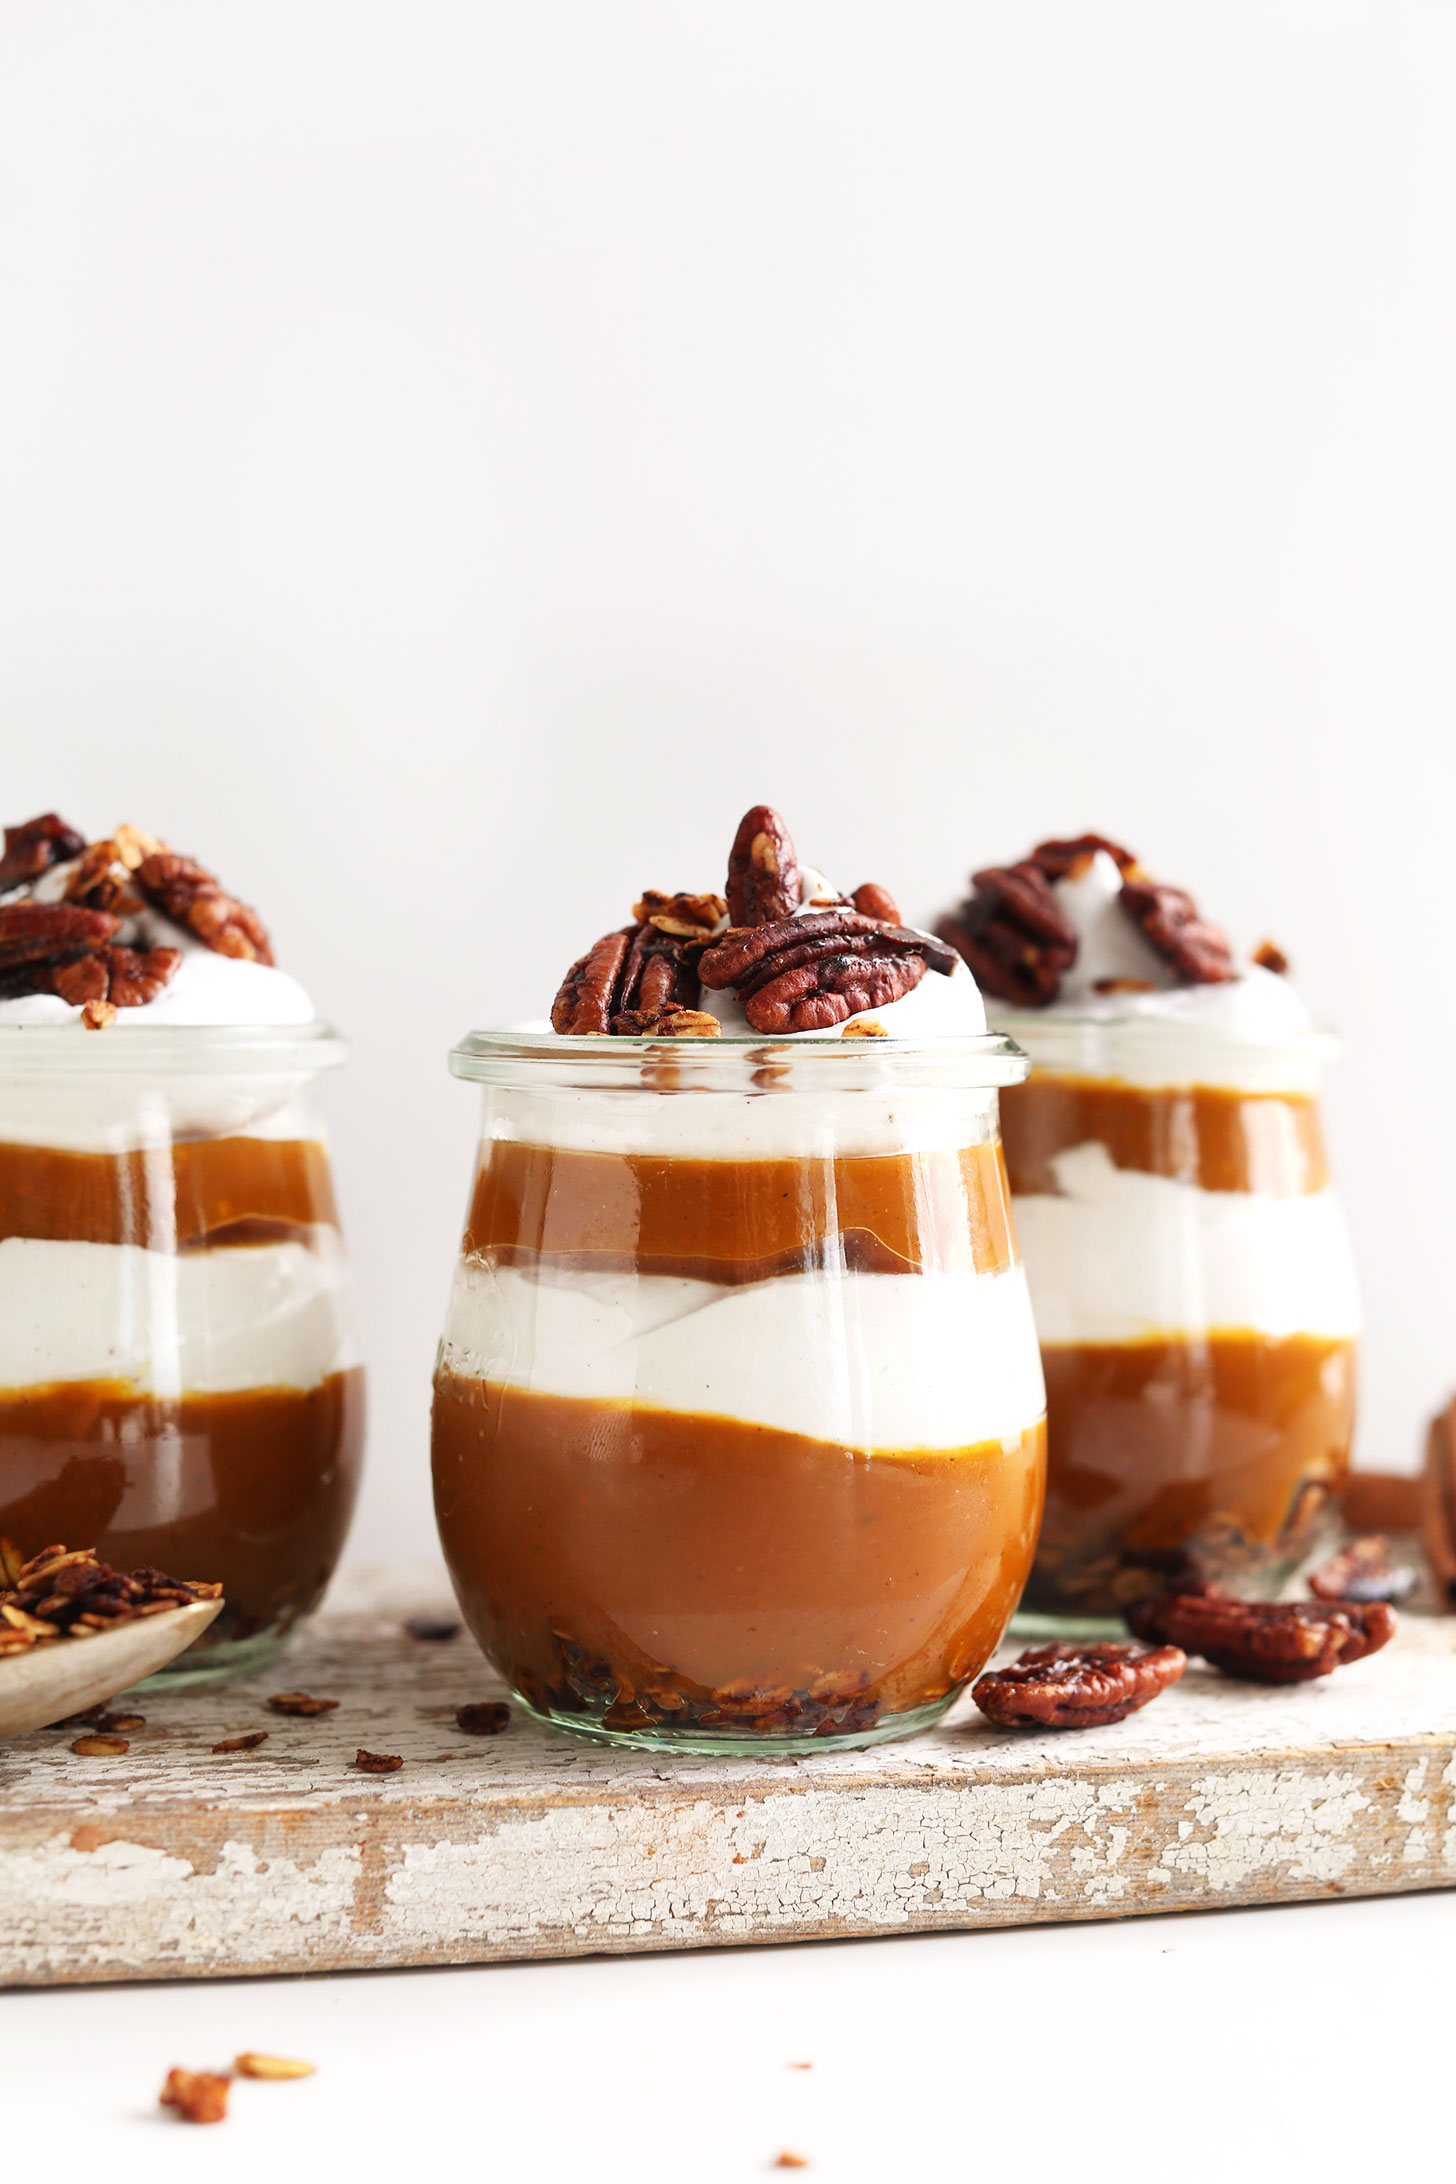 Gluten-free vegan Pumpkin Parfaits in cute jars